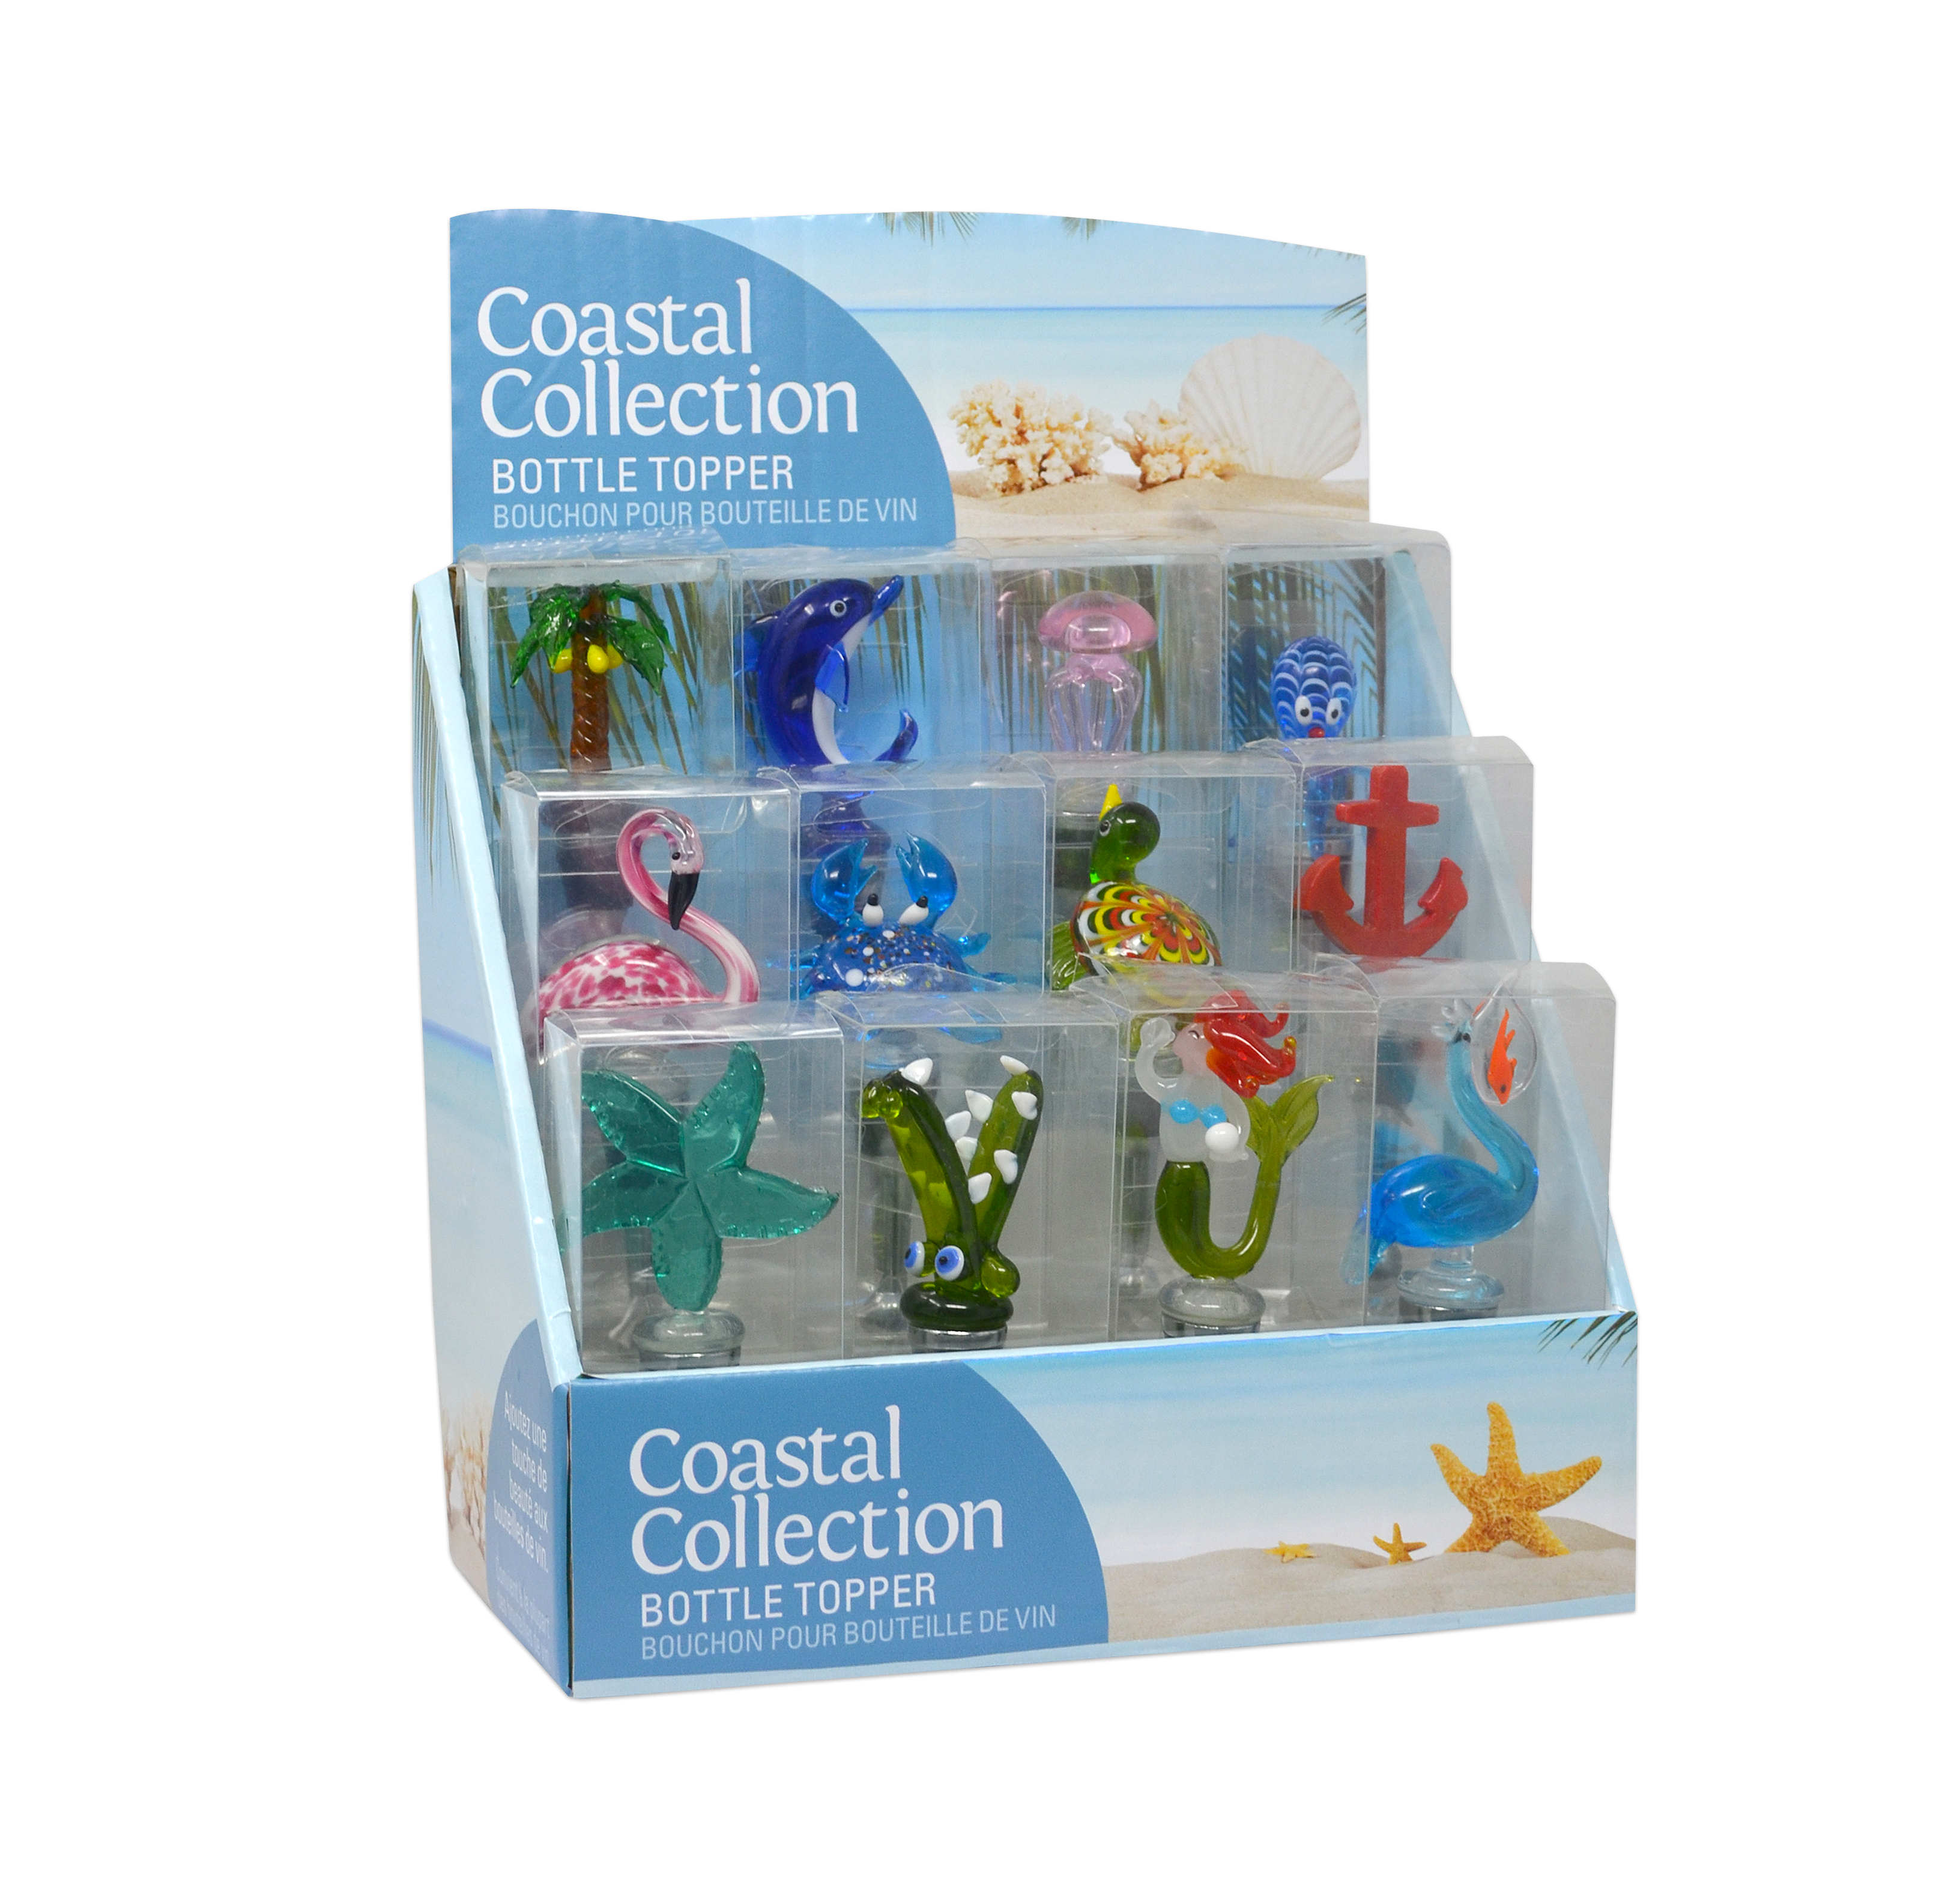 Coastal Collection 12 pc Bottle Stopper Display